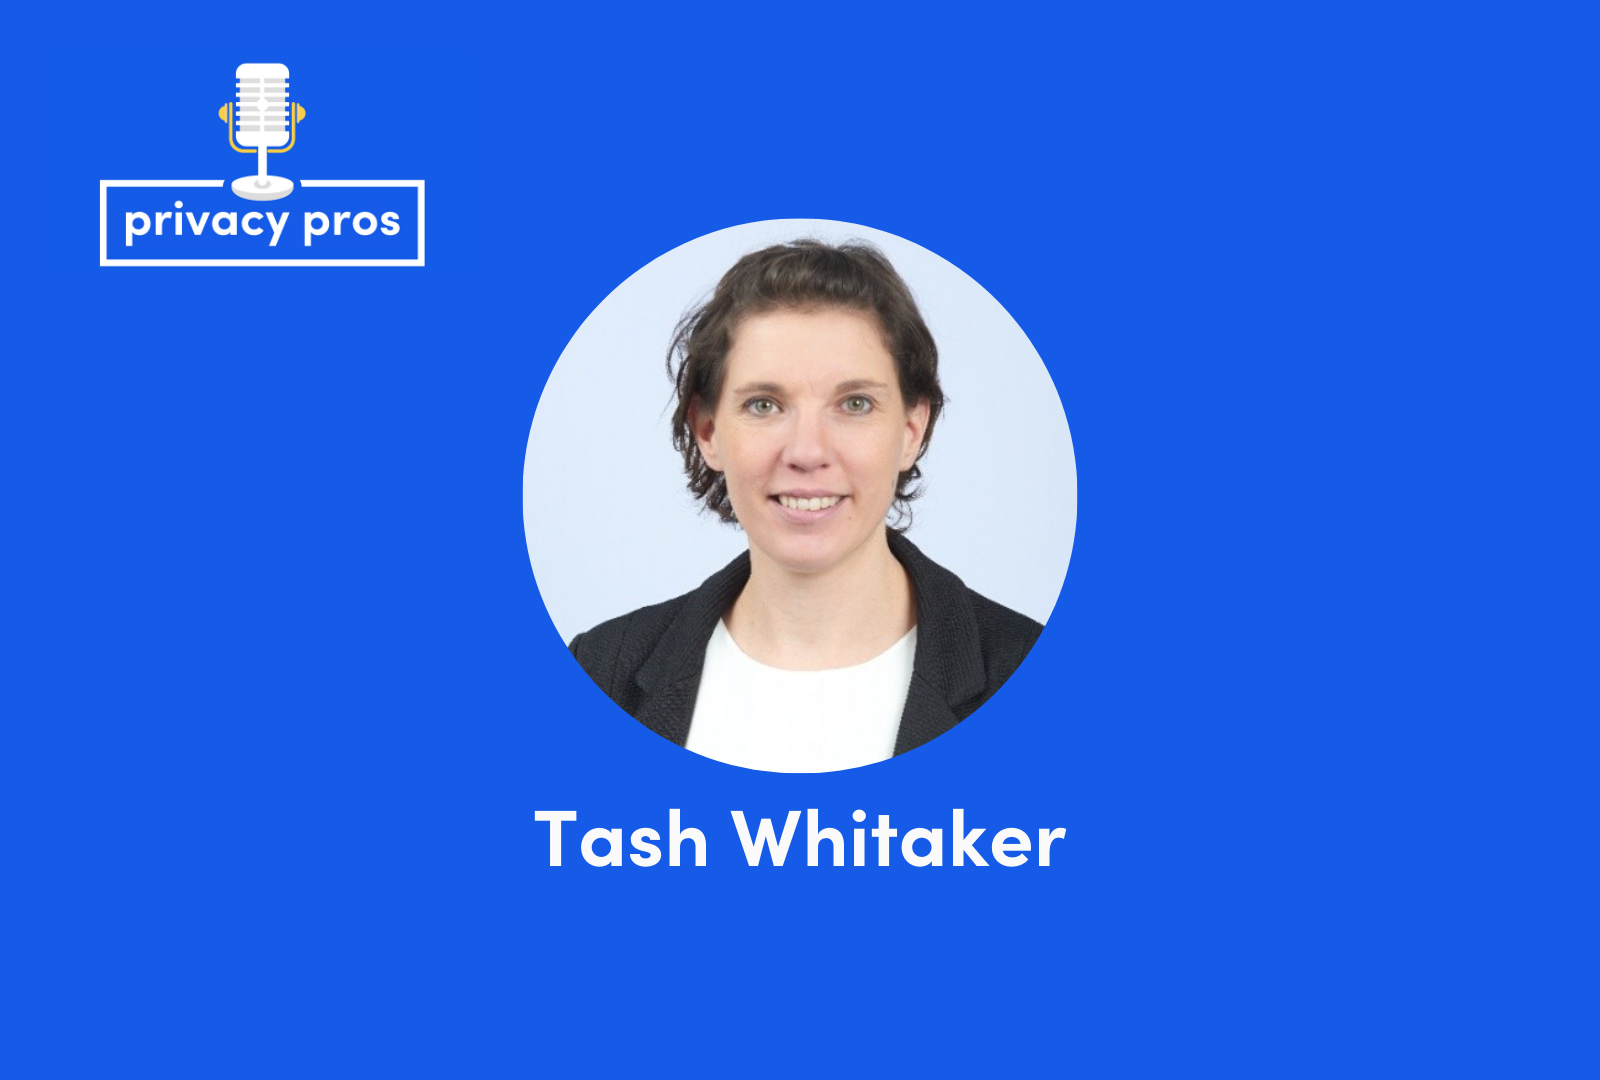 Interview with Tash Whitaker, privacy consultant and public speaker